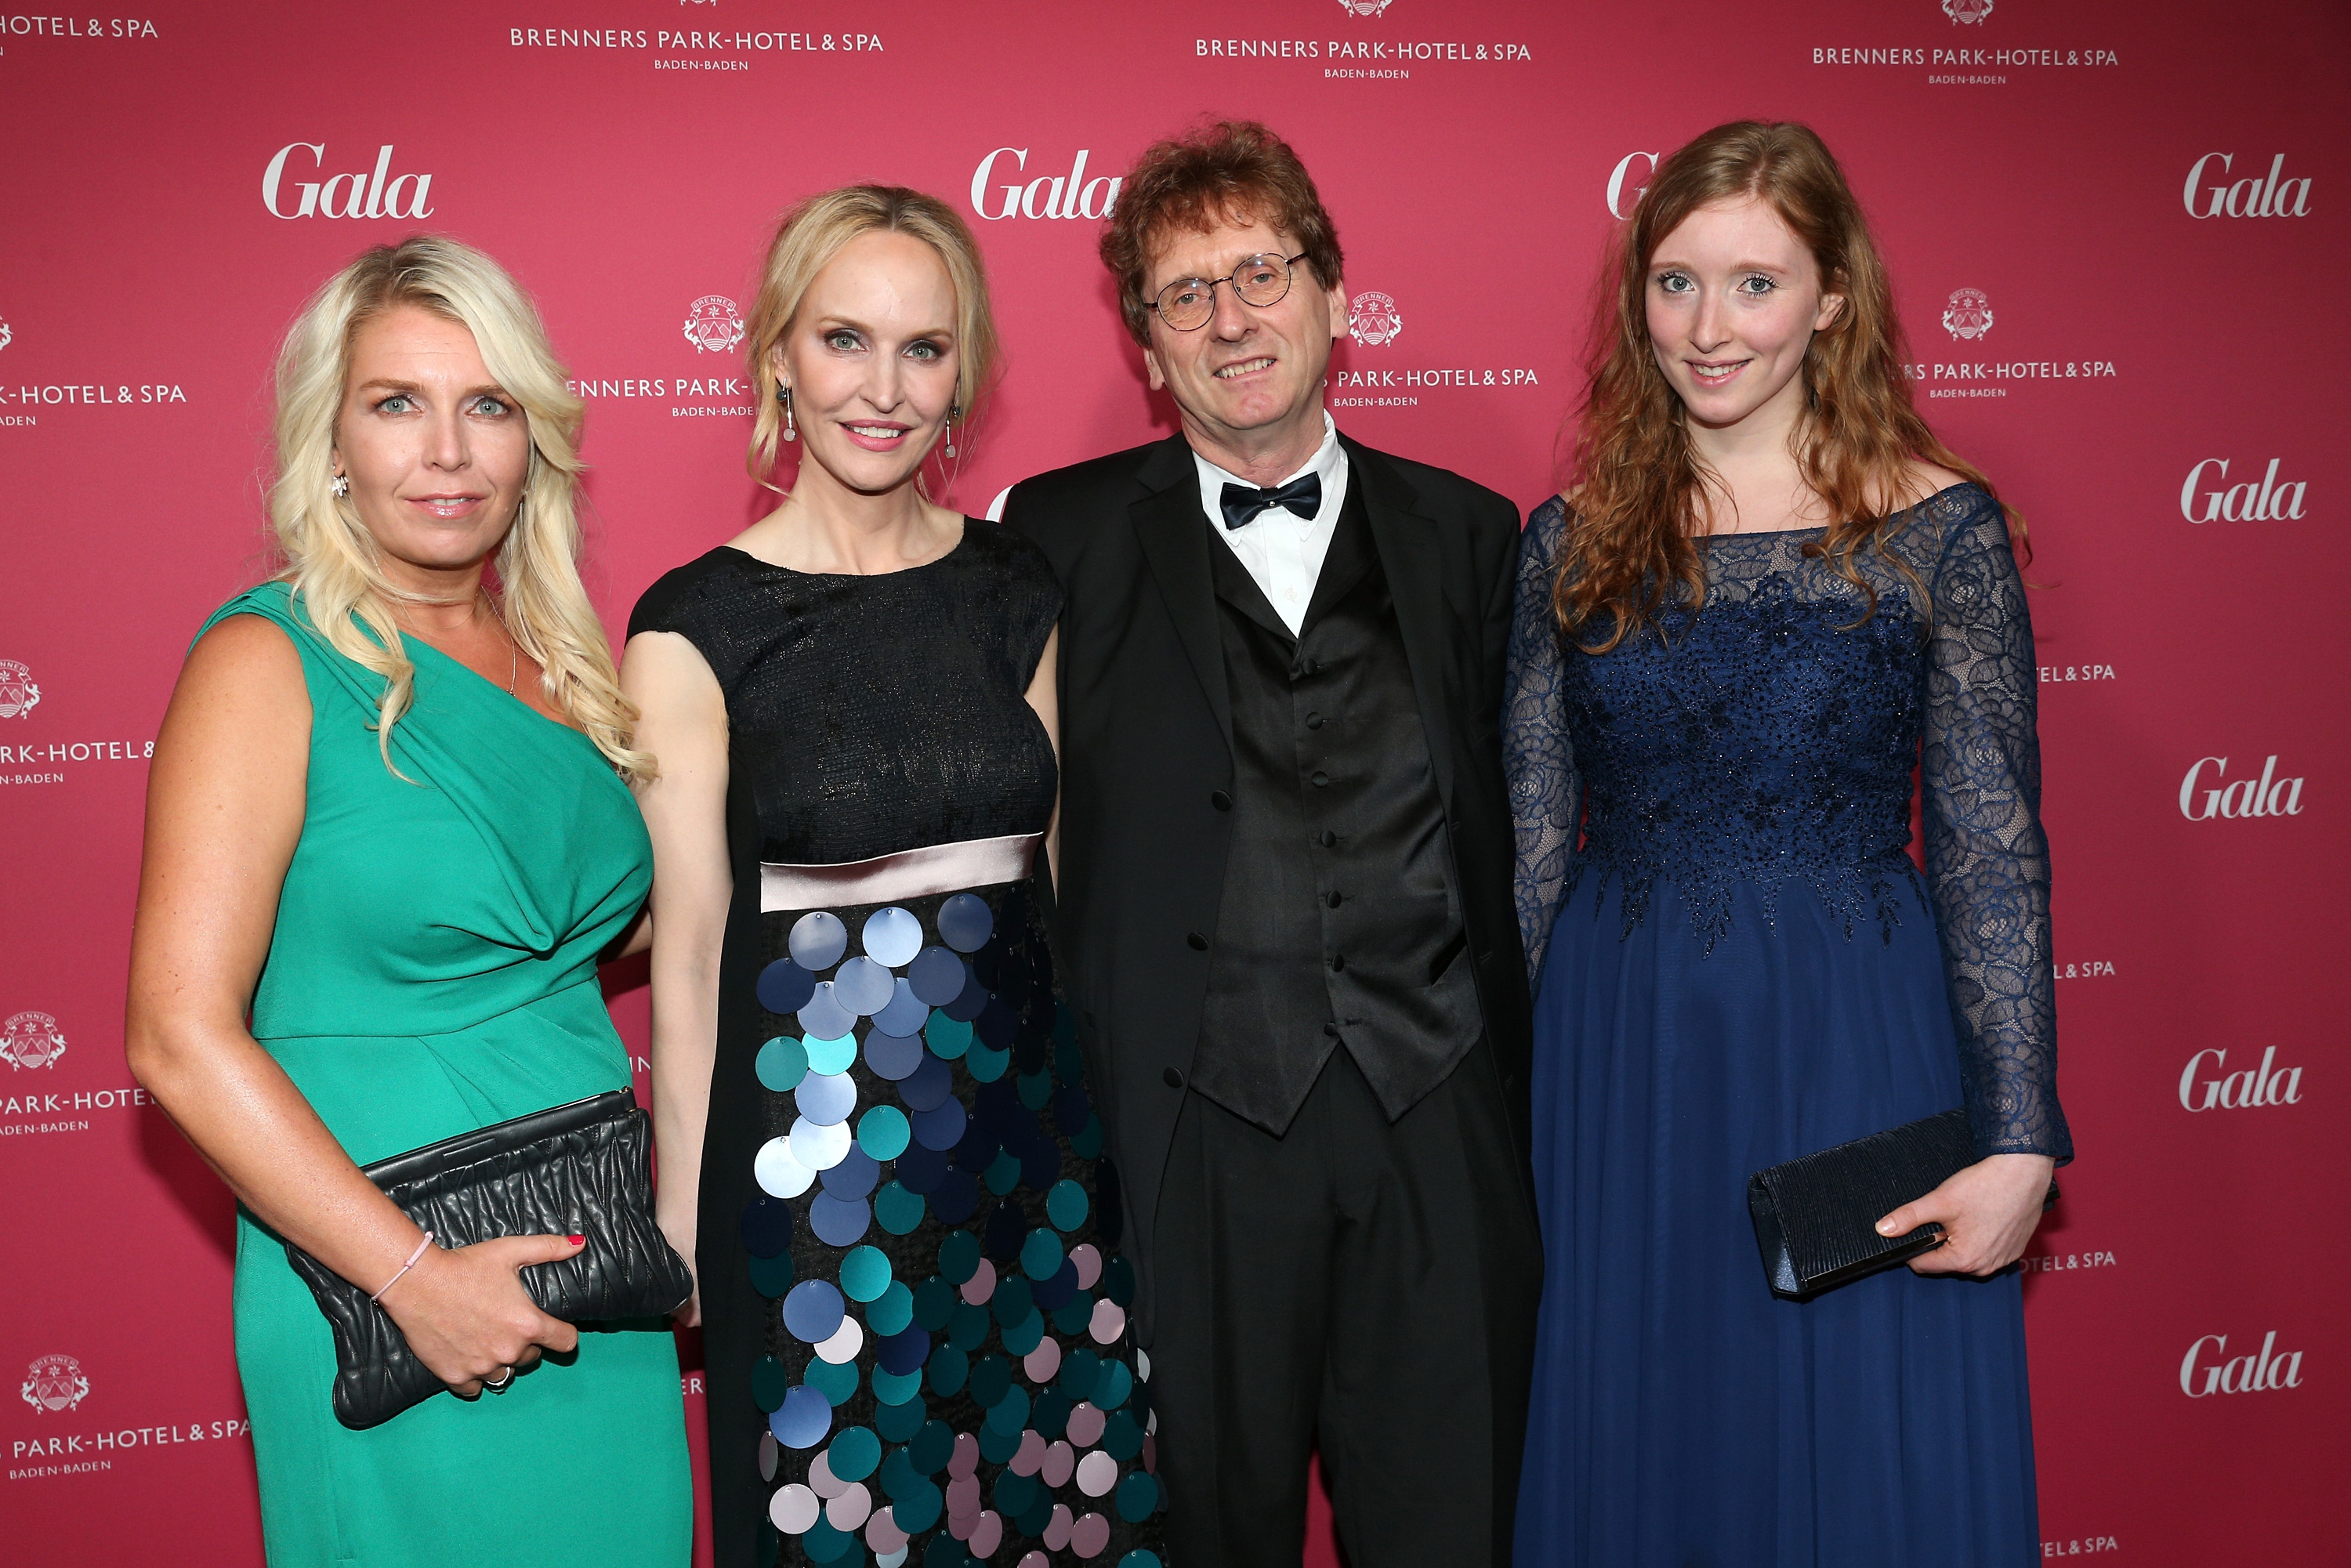 BADEN-BADEN, BADEN-WUERTTEMBERG - APRIL 02: Astrid Bleeker, Anne Meyer-Minneman, Editor in chief of GALA, Michael Braungart and his daughter during the Gala Spa Awards on April 2, 2016 in Baden-Baden, Germany. (Photo by Gisela Schober/Getty Images for GALA)